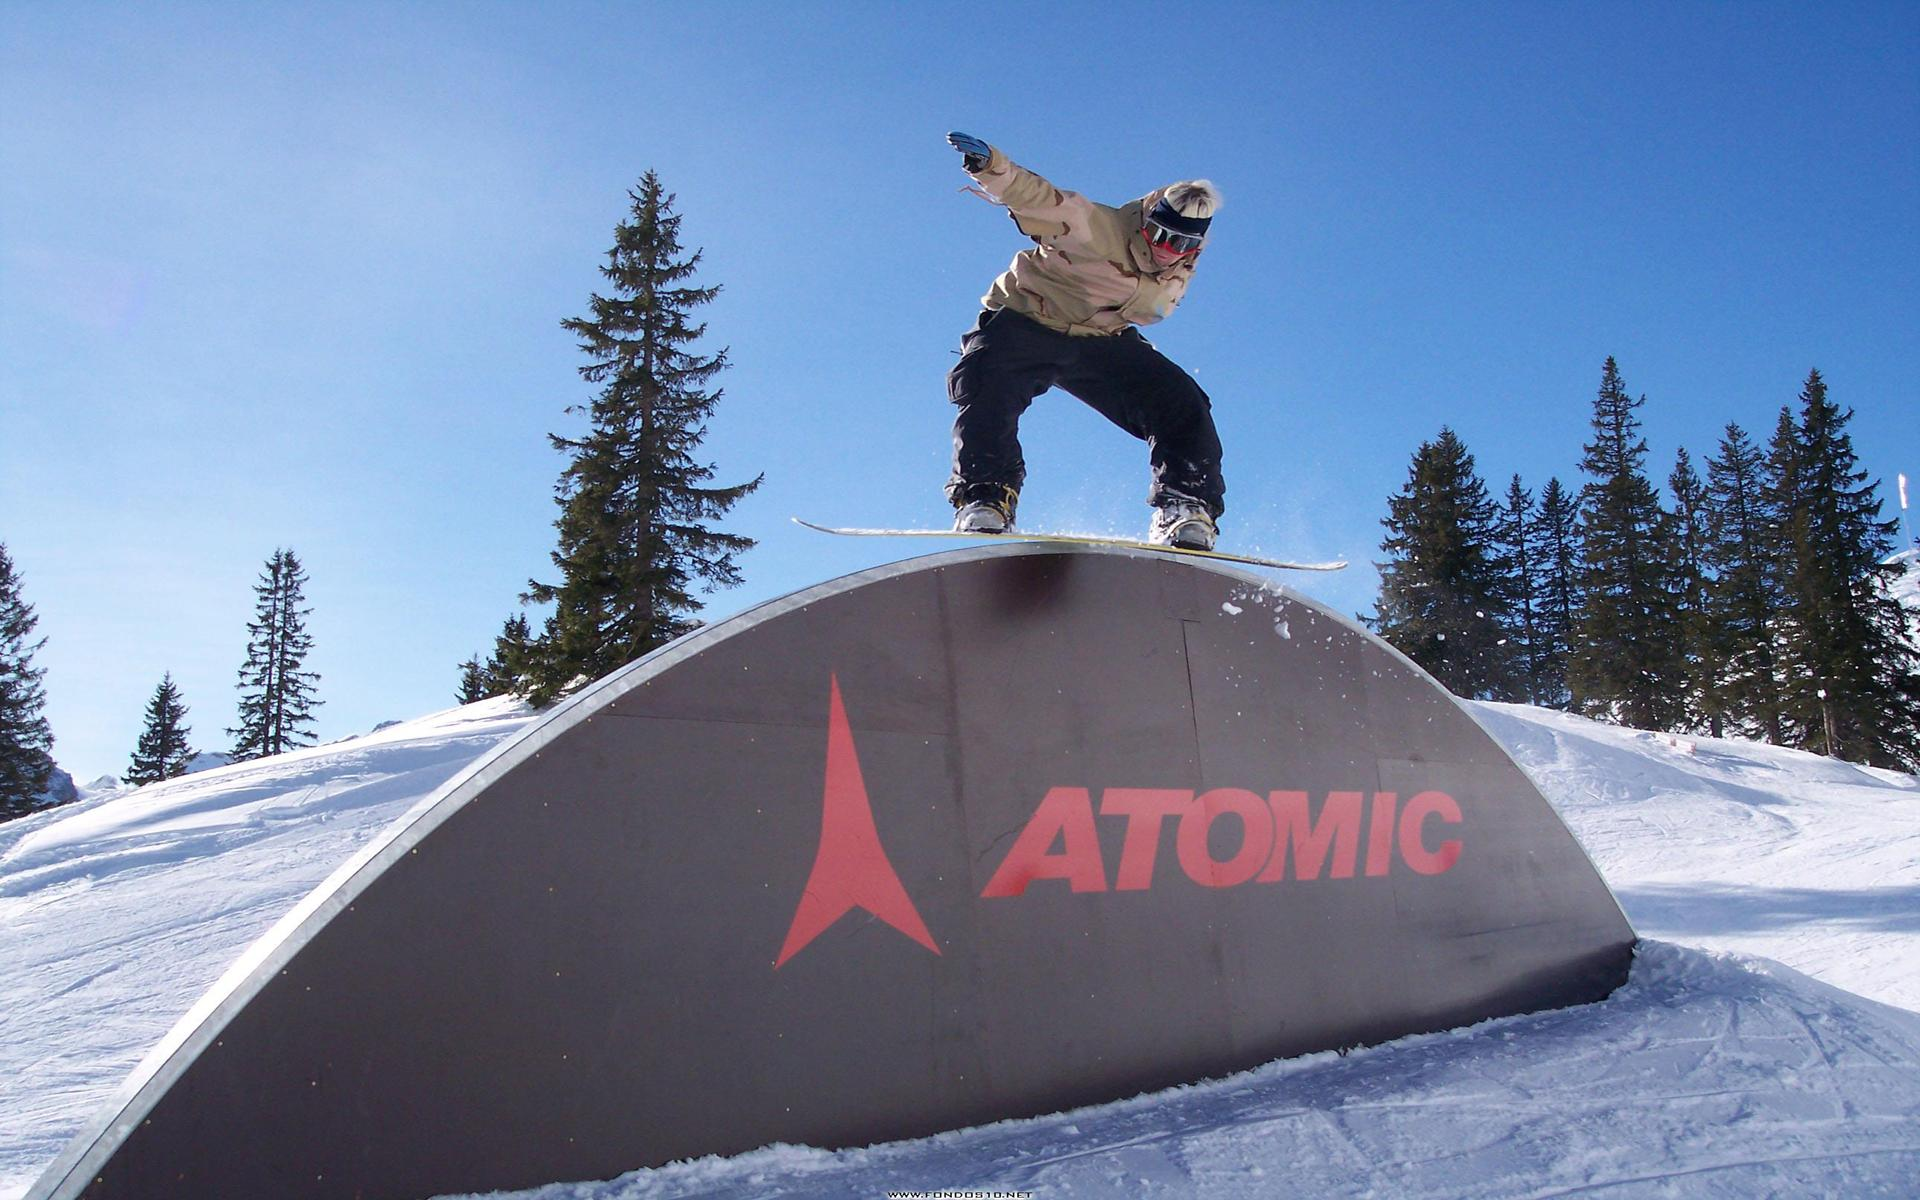 snowboard outdoor wallpaper desktop - photo #34